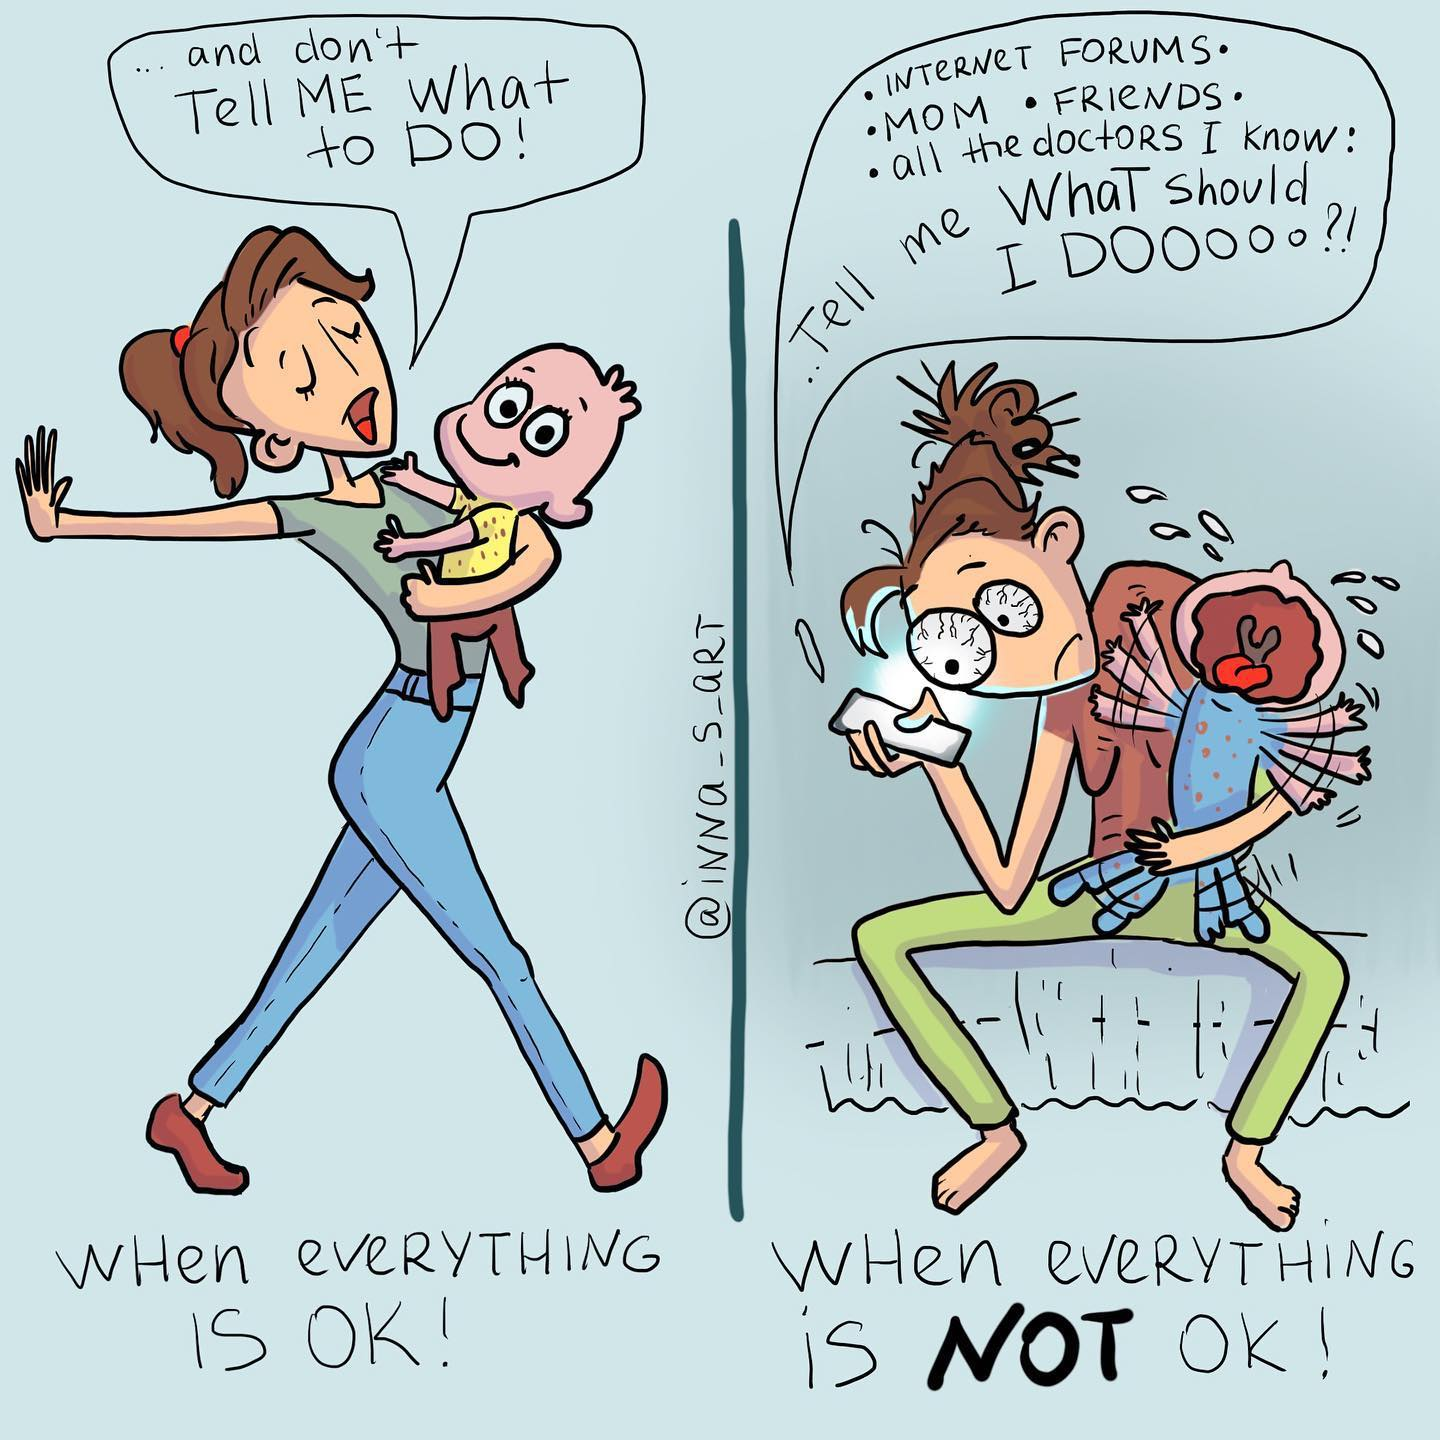 a comics comparing a mom when her child is okay and when he is not